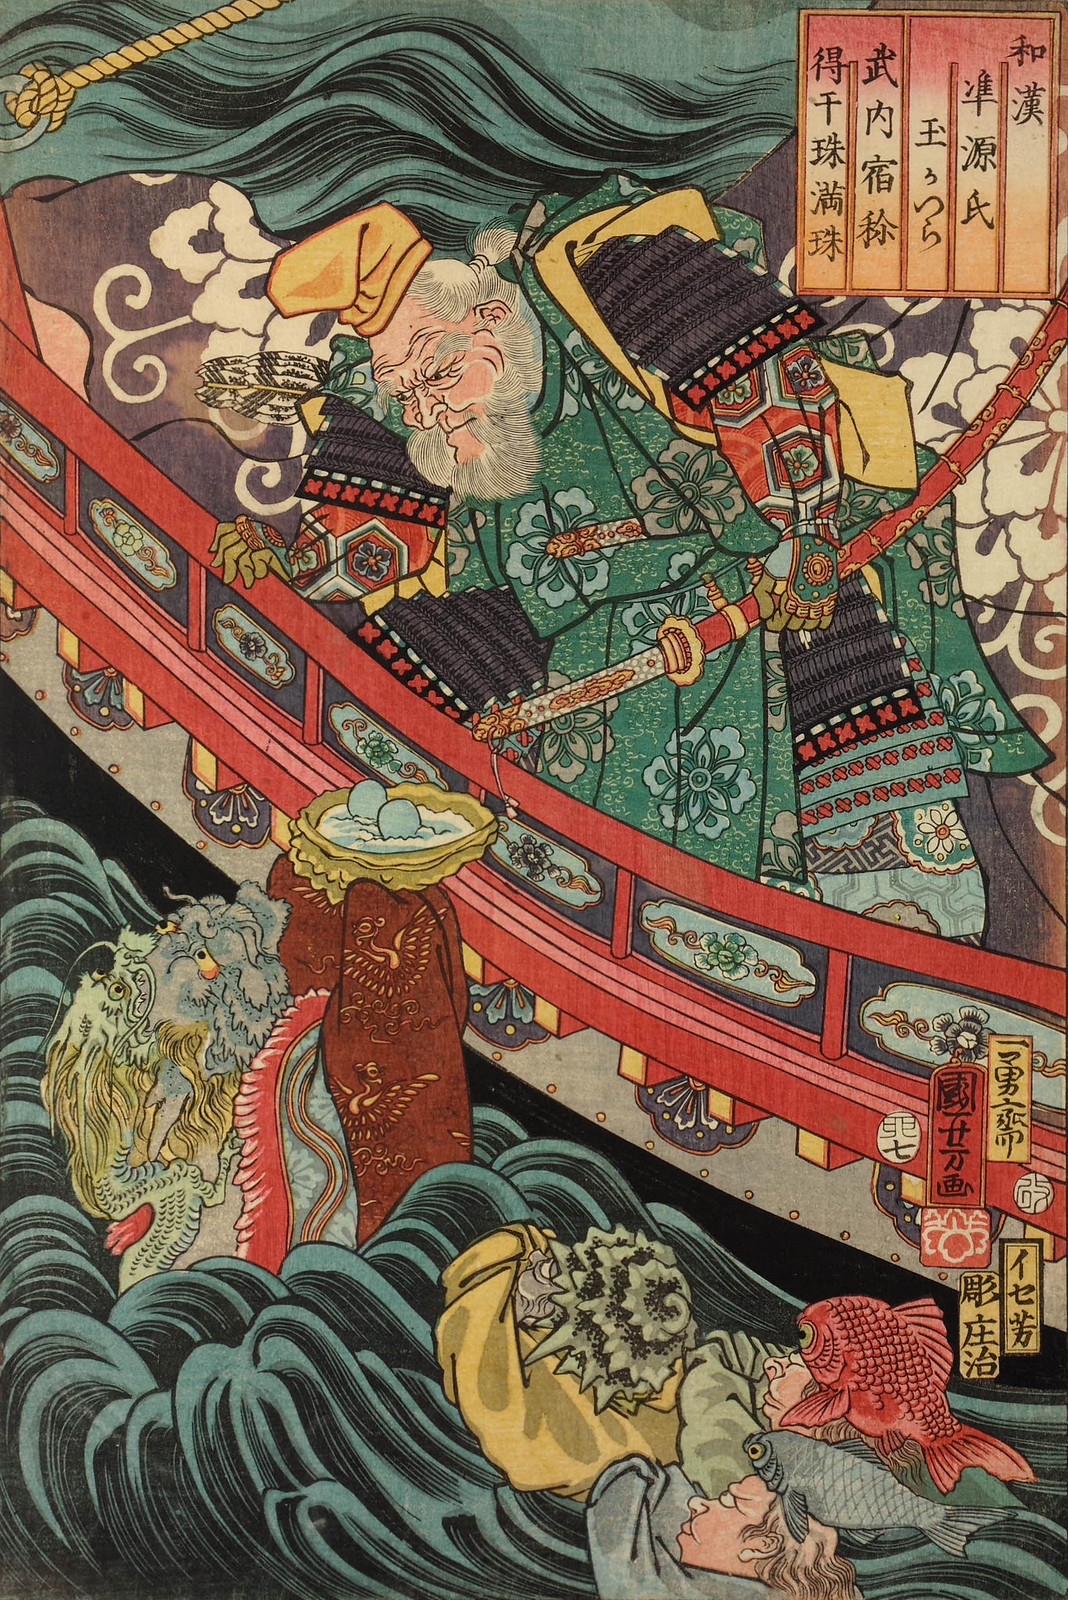 Utagawa Kuniyoshi - Takeuchi-no-sukune looking over the side of his ship, being offered two magic jewels, senju and manju, by the Dragon King. 1855